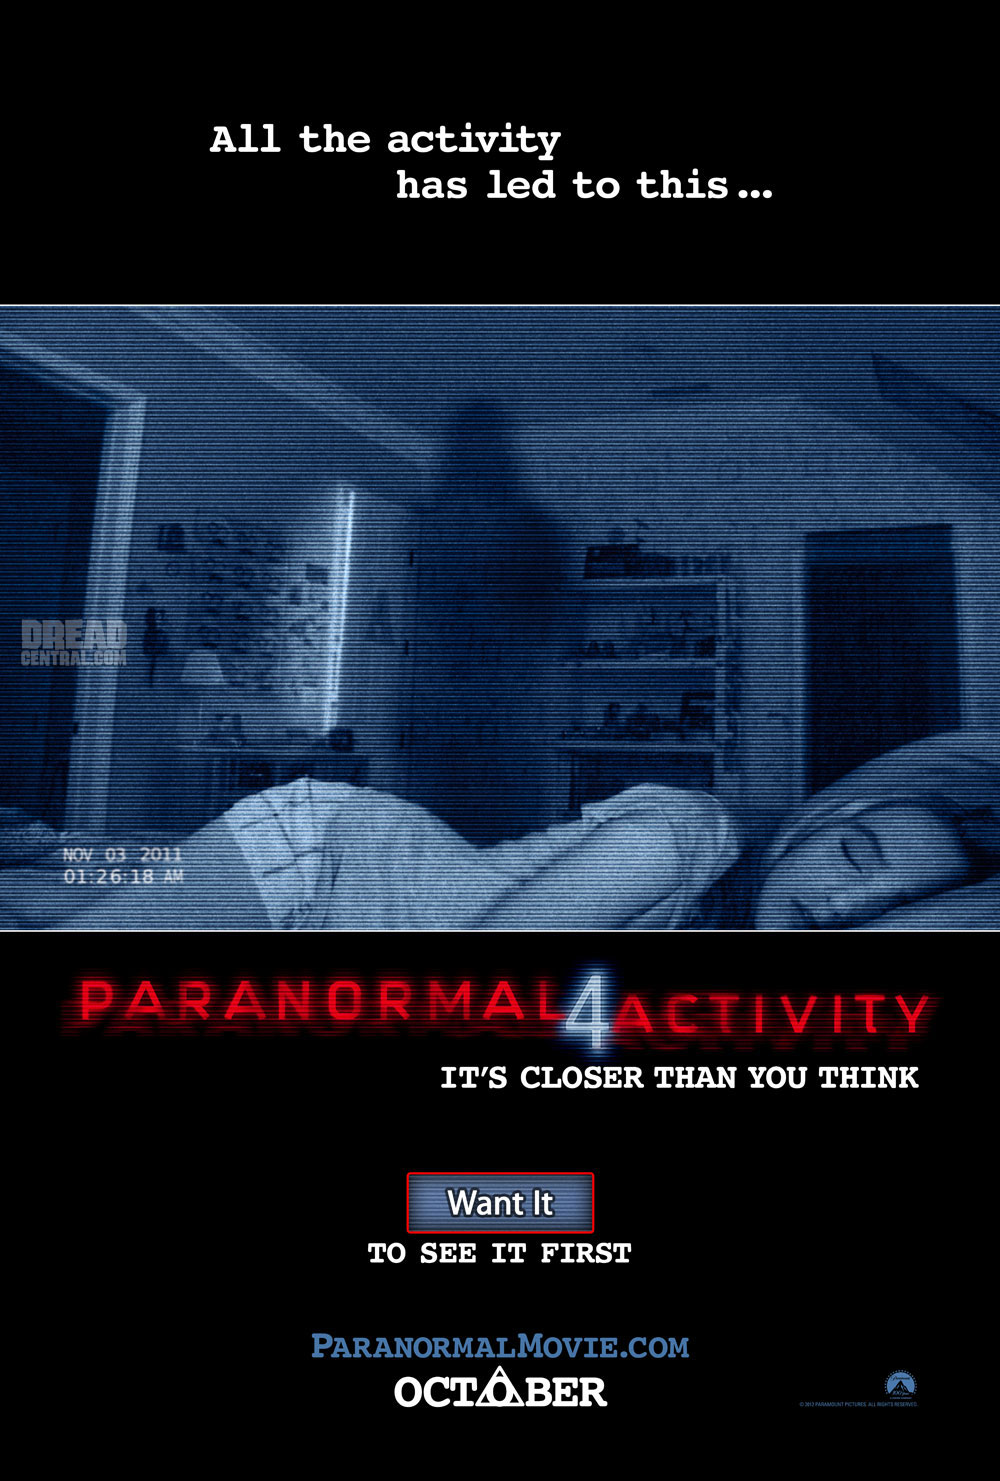 Paranormal Activity 4 Trailer: Will Questions Finally be Answered? Probably Not, But it's Still Creepy as Hell